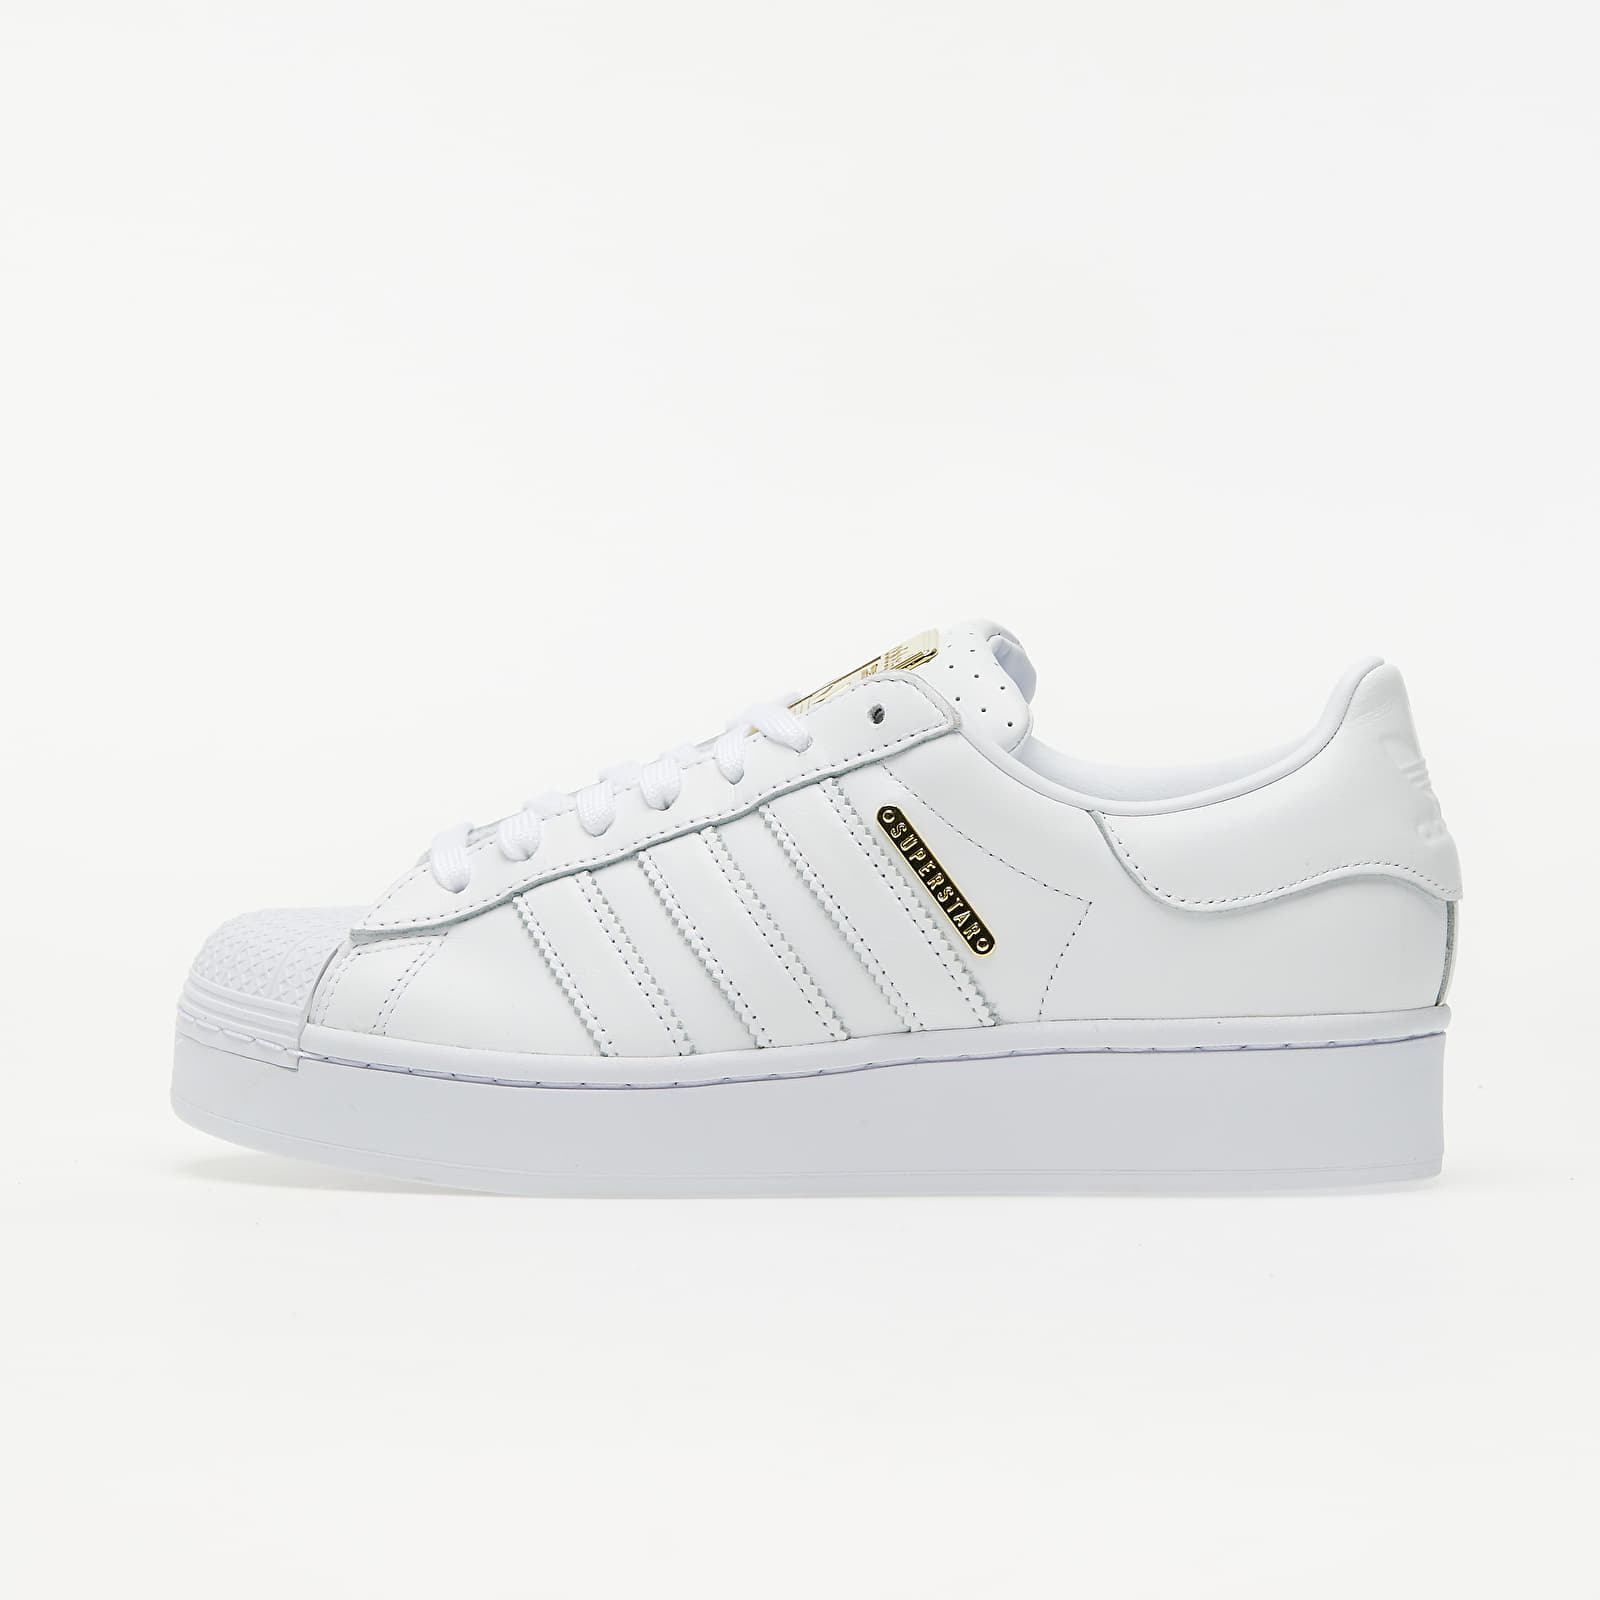 adidas Superstar Bold W Ftw White/ Gold Metalic/ Core Black EUR 39 1/3